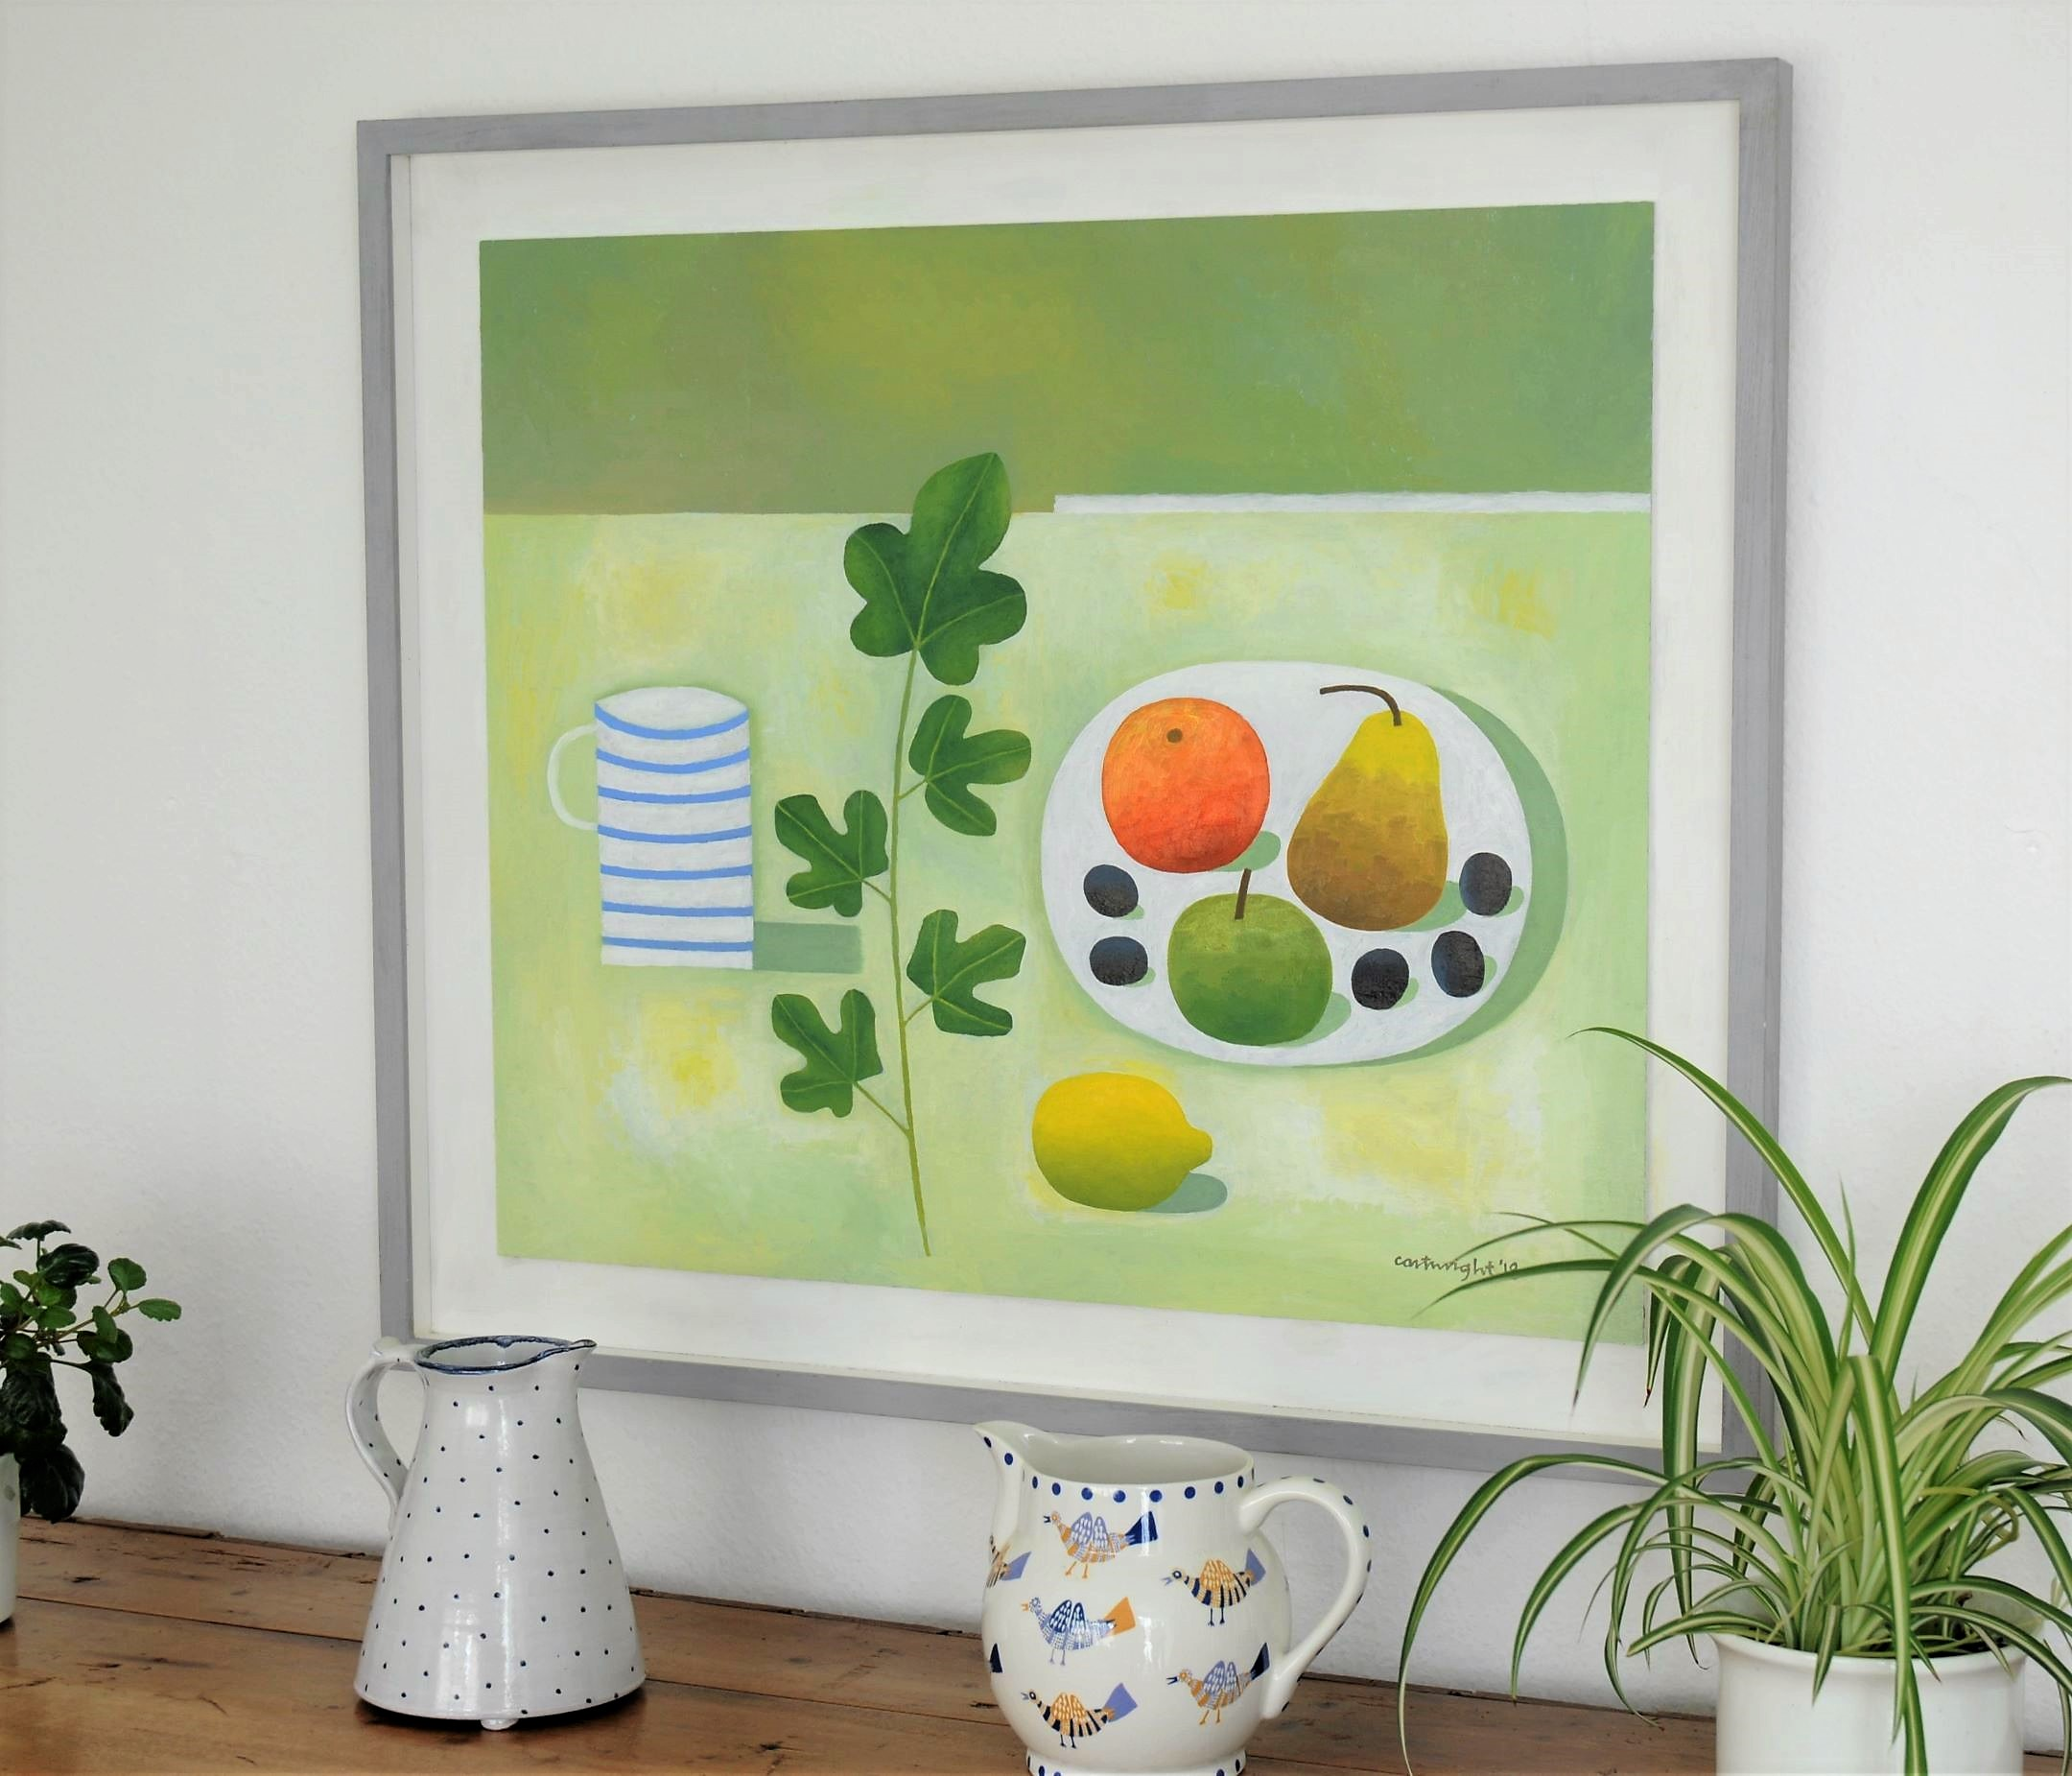 contemporary still life painting ina grey modern frame on wall with jugs in forground